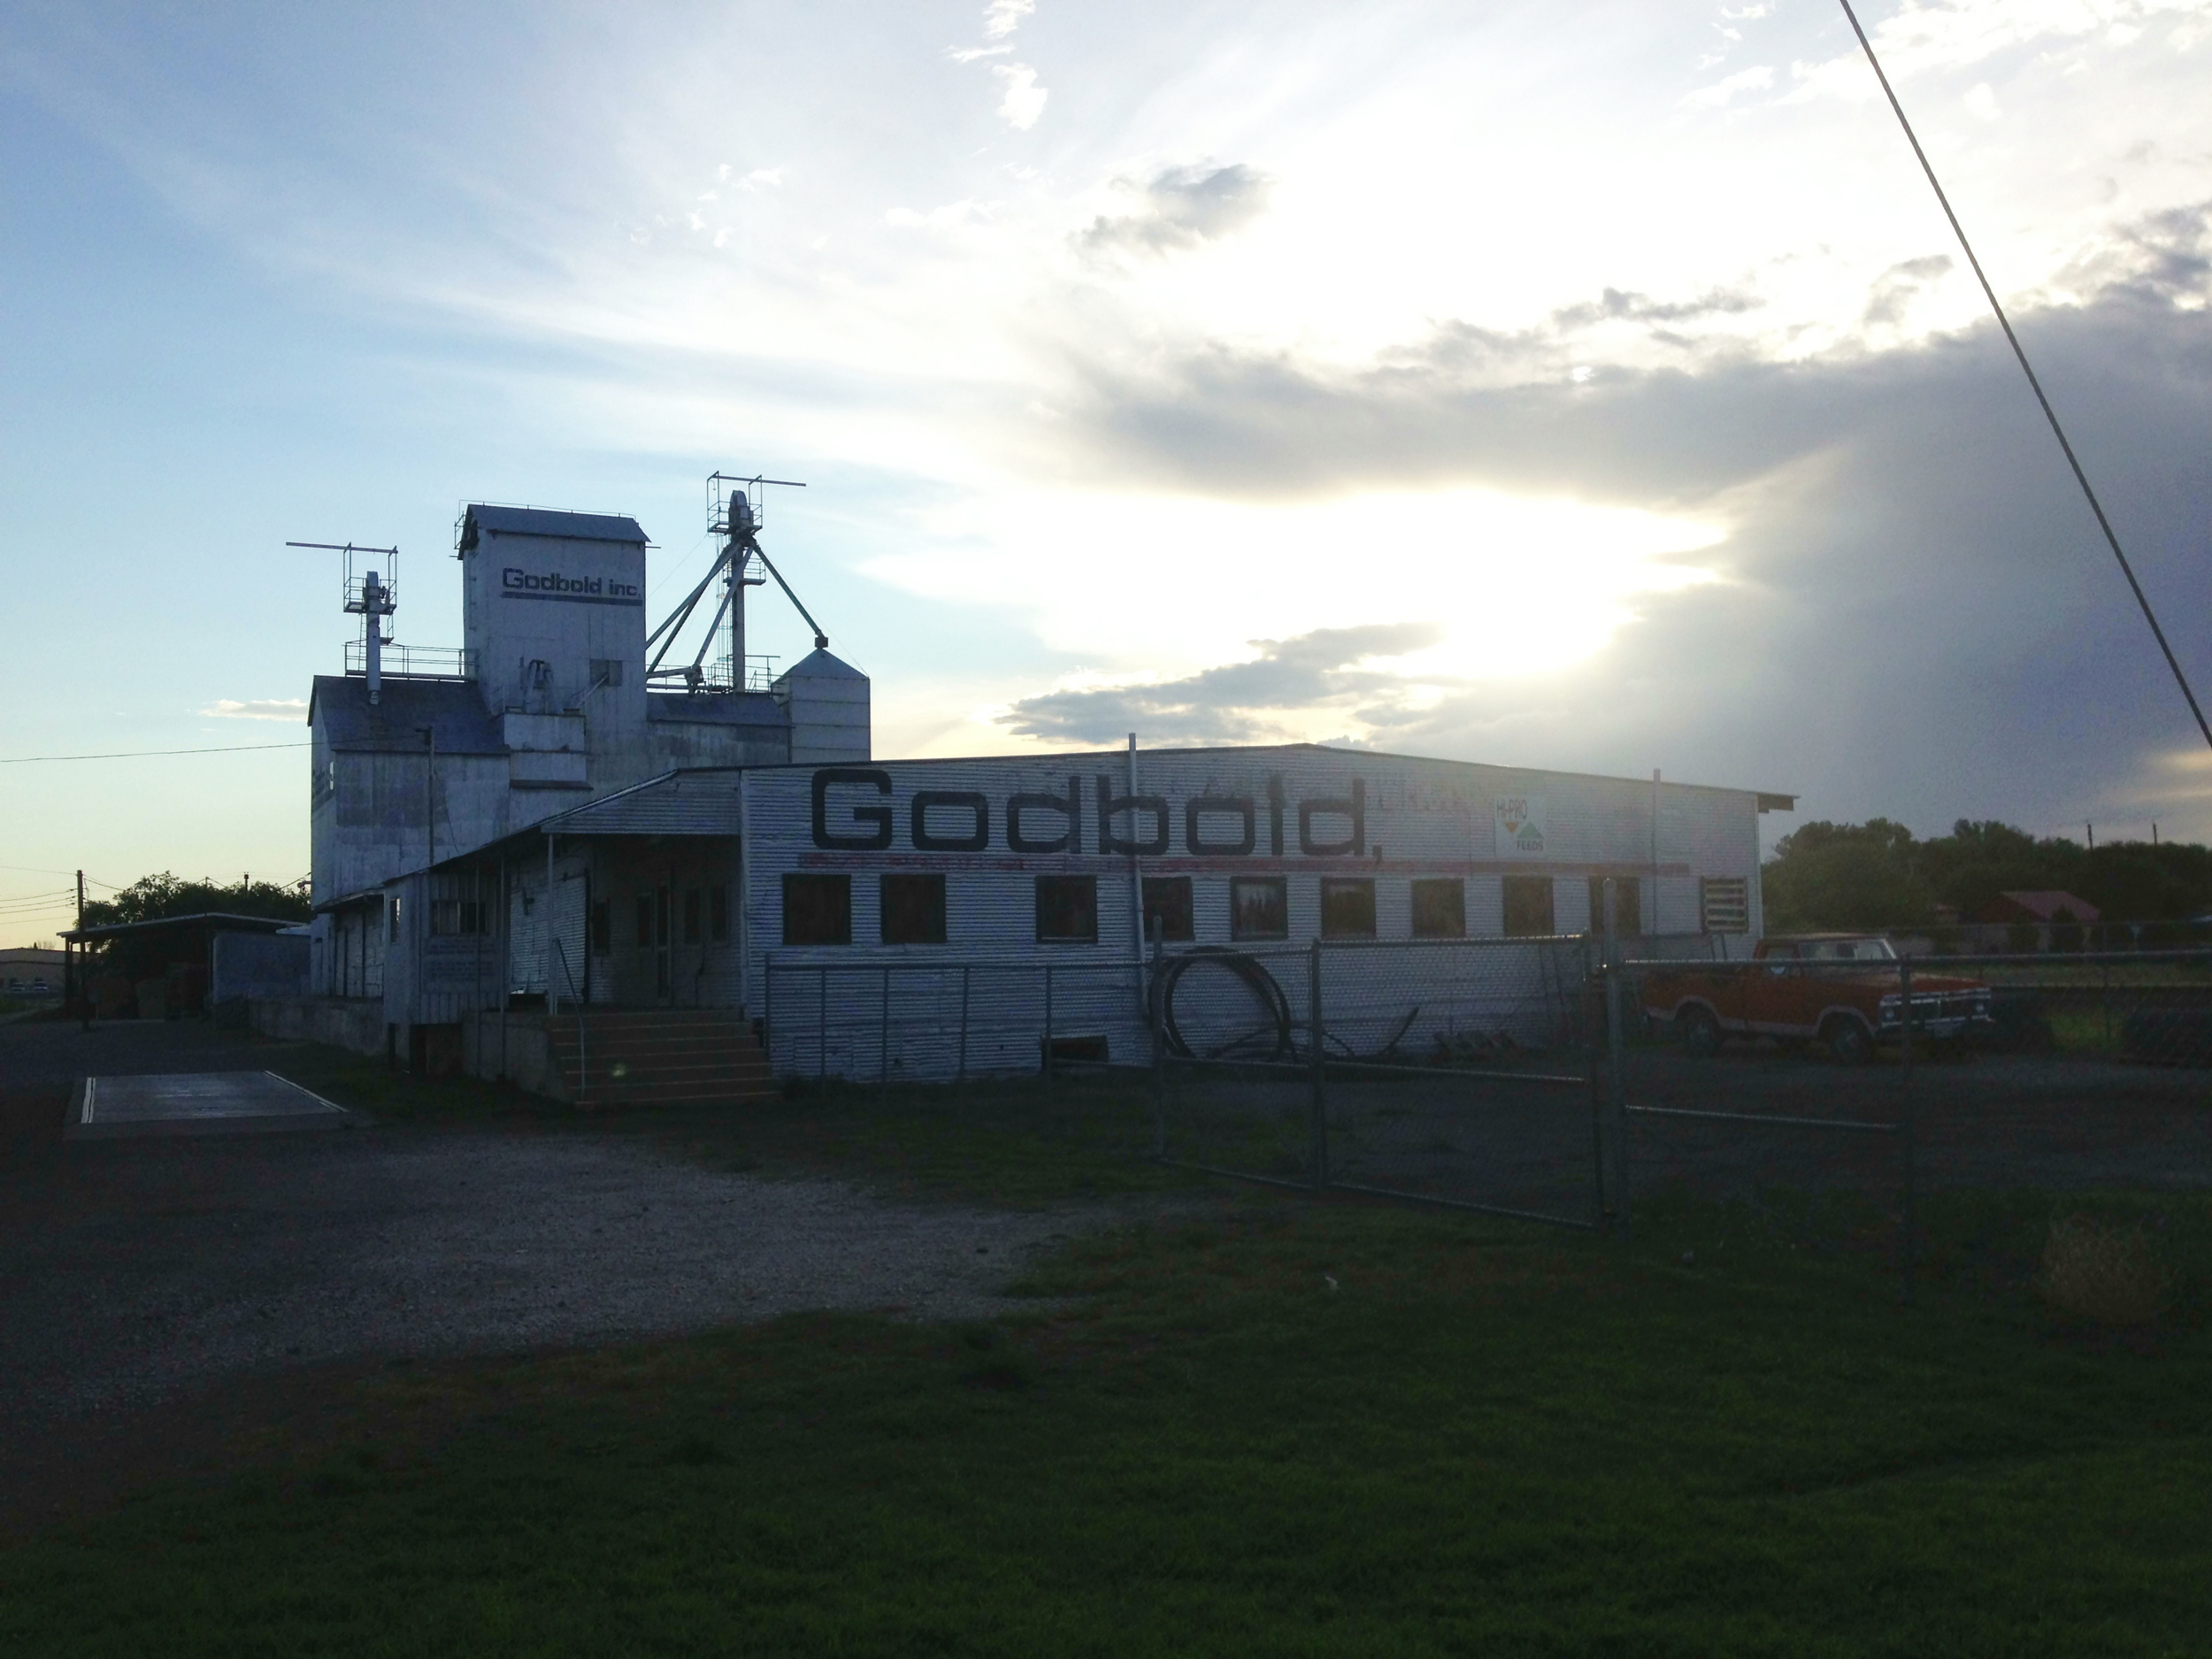 Grain elevator in Marfa, Texas.  Taken on our road trip there this summer.